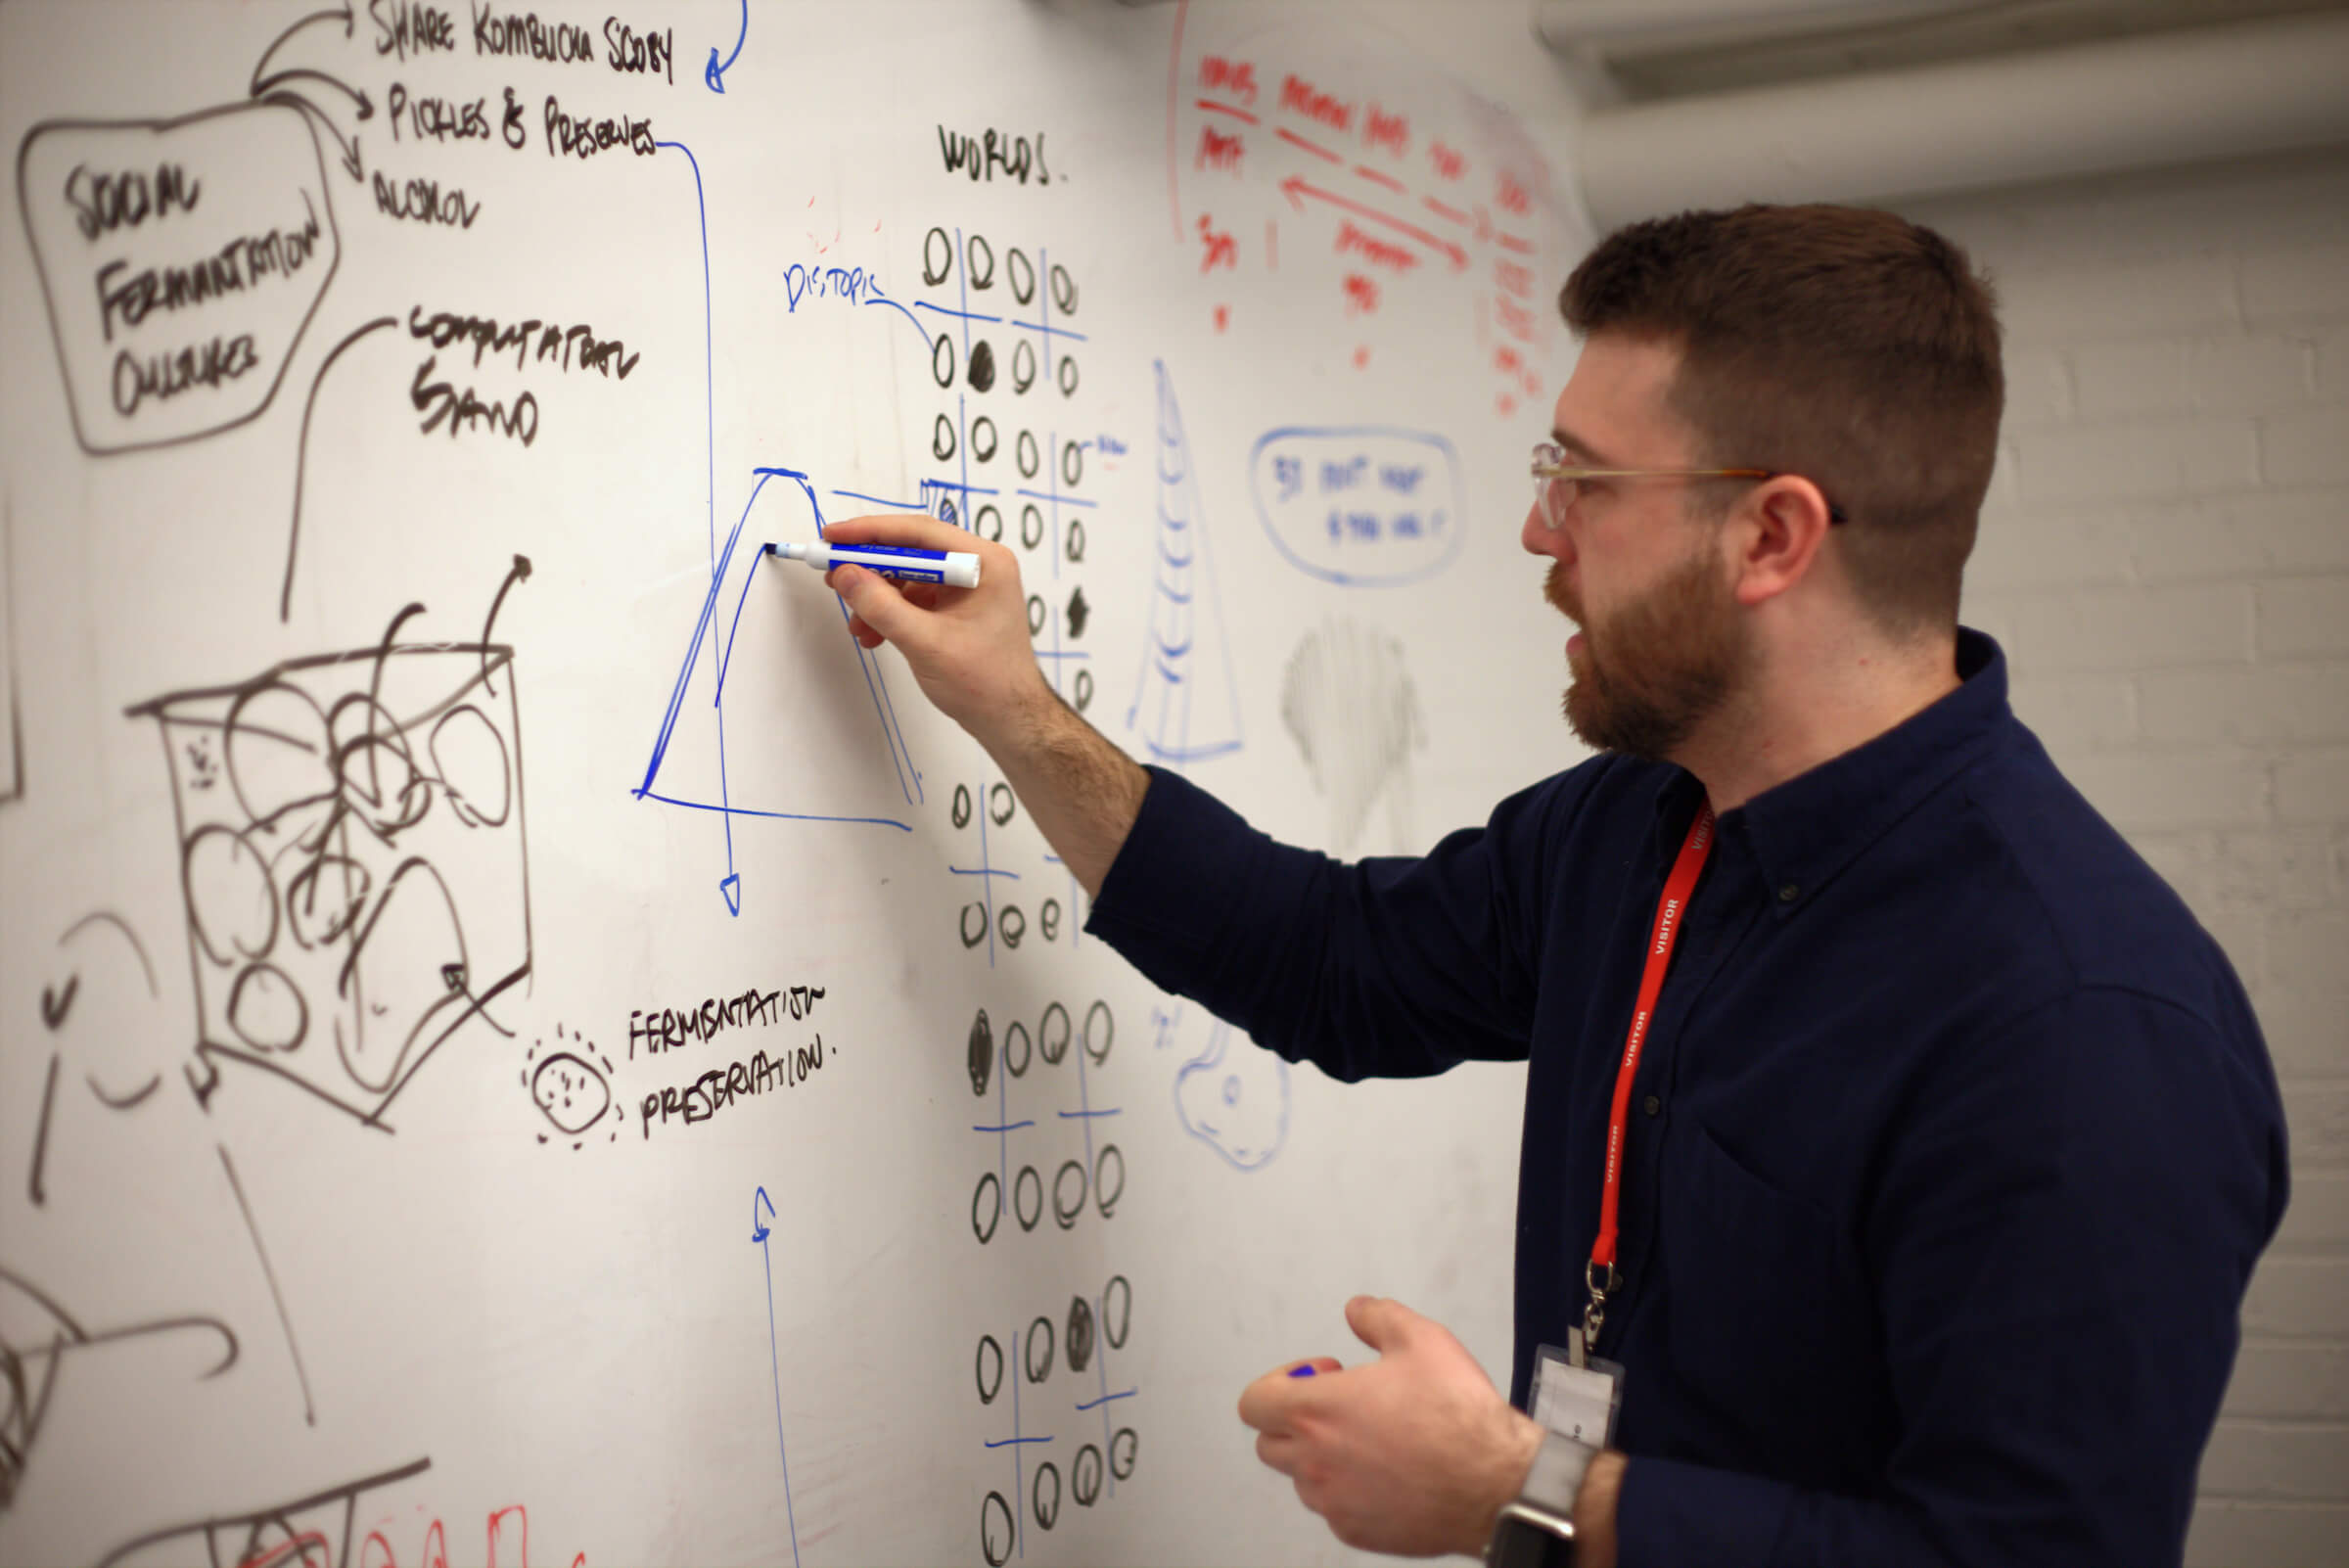 A man draws on a whiteboard covered in project sketches.